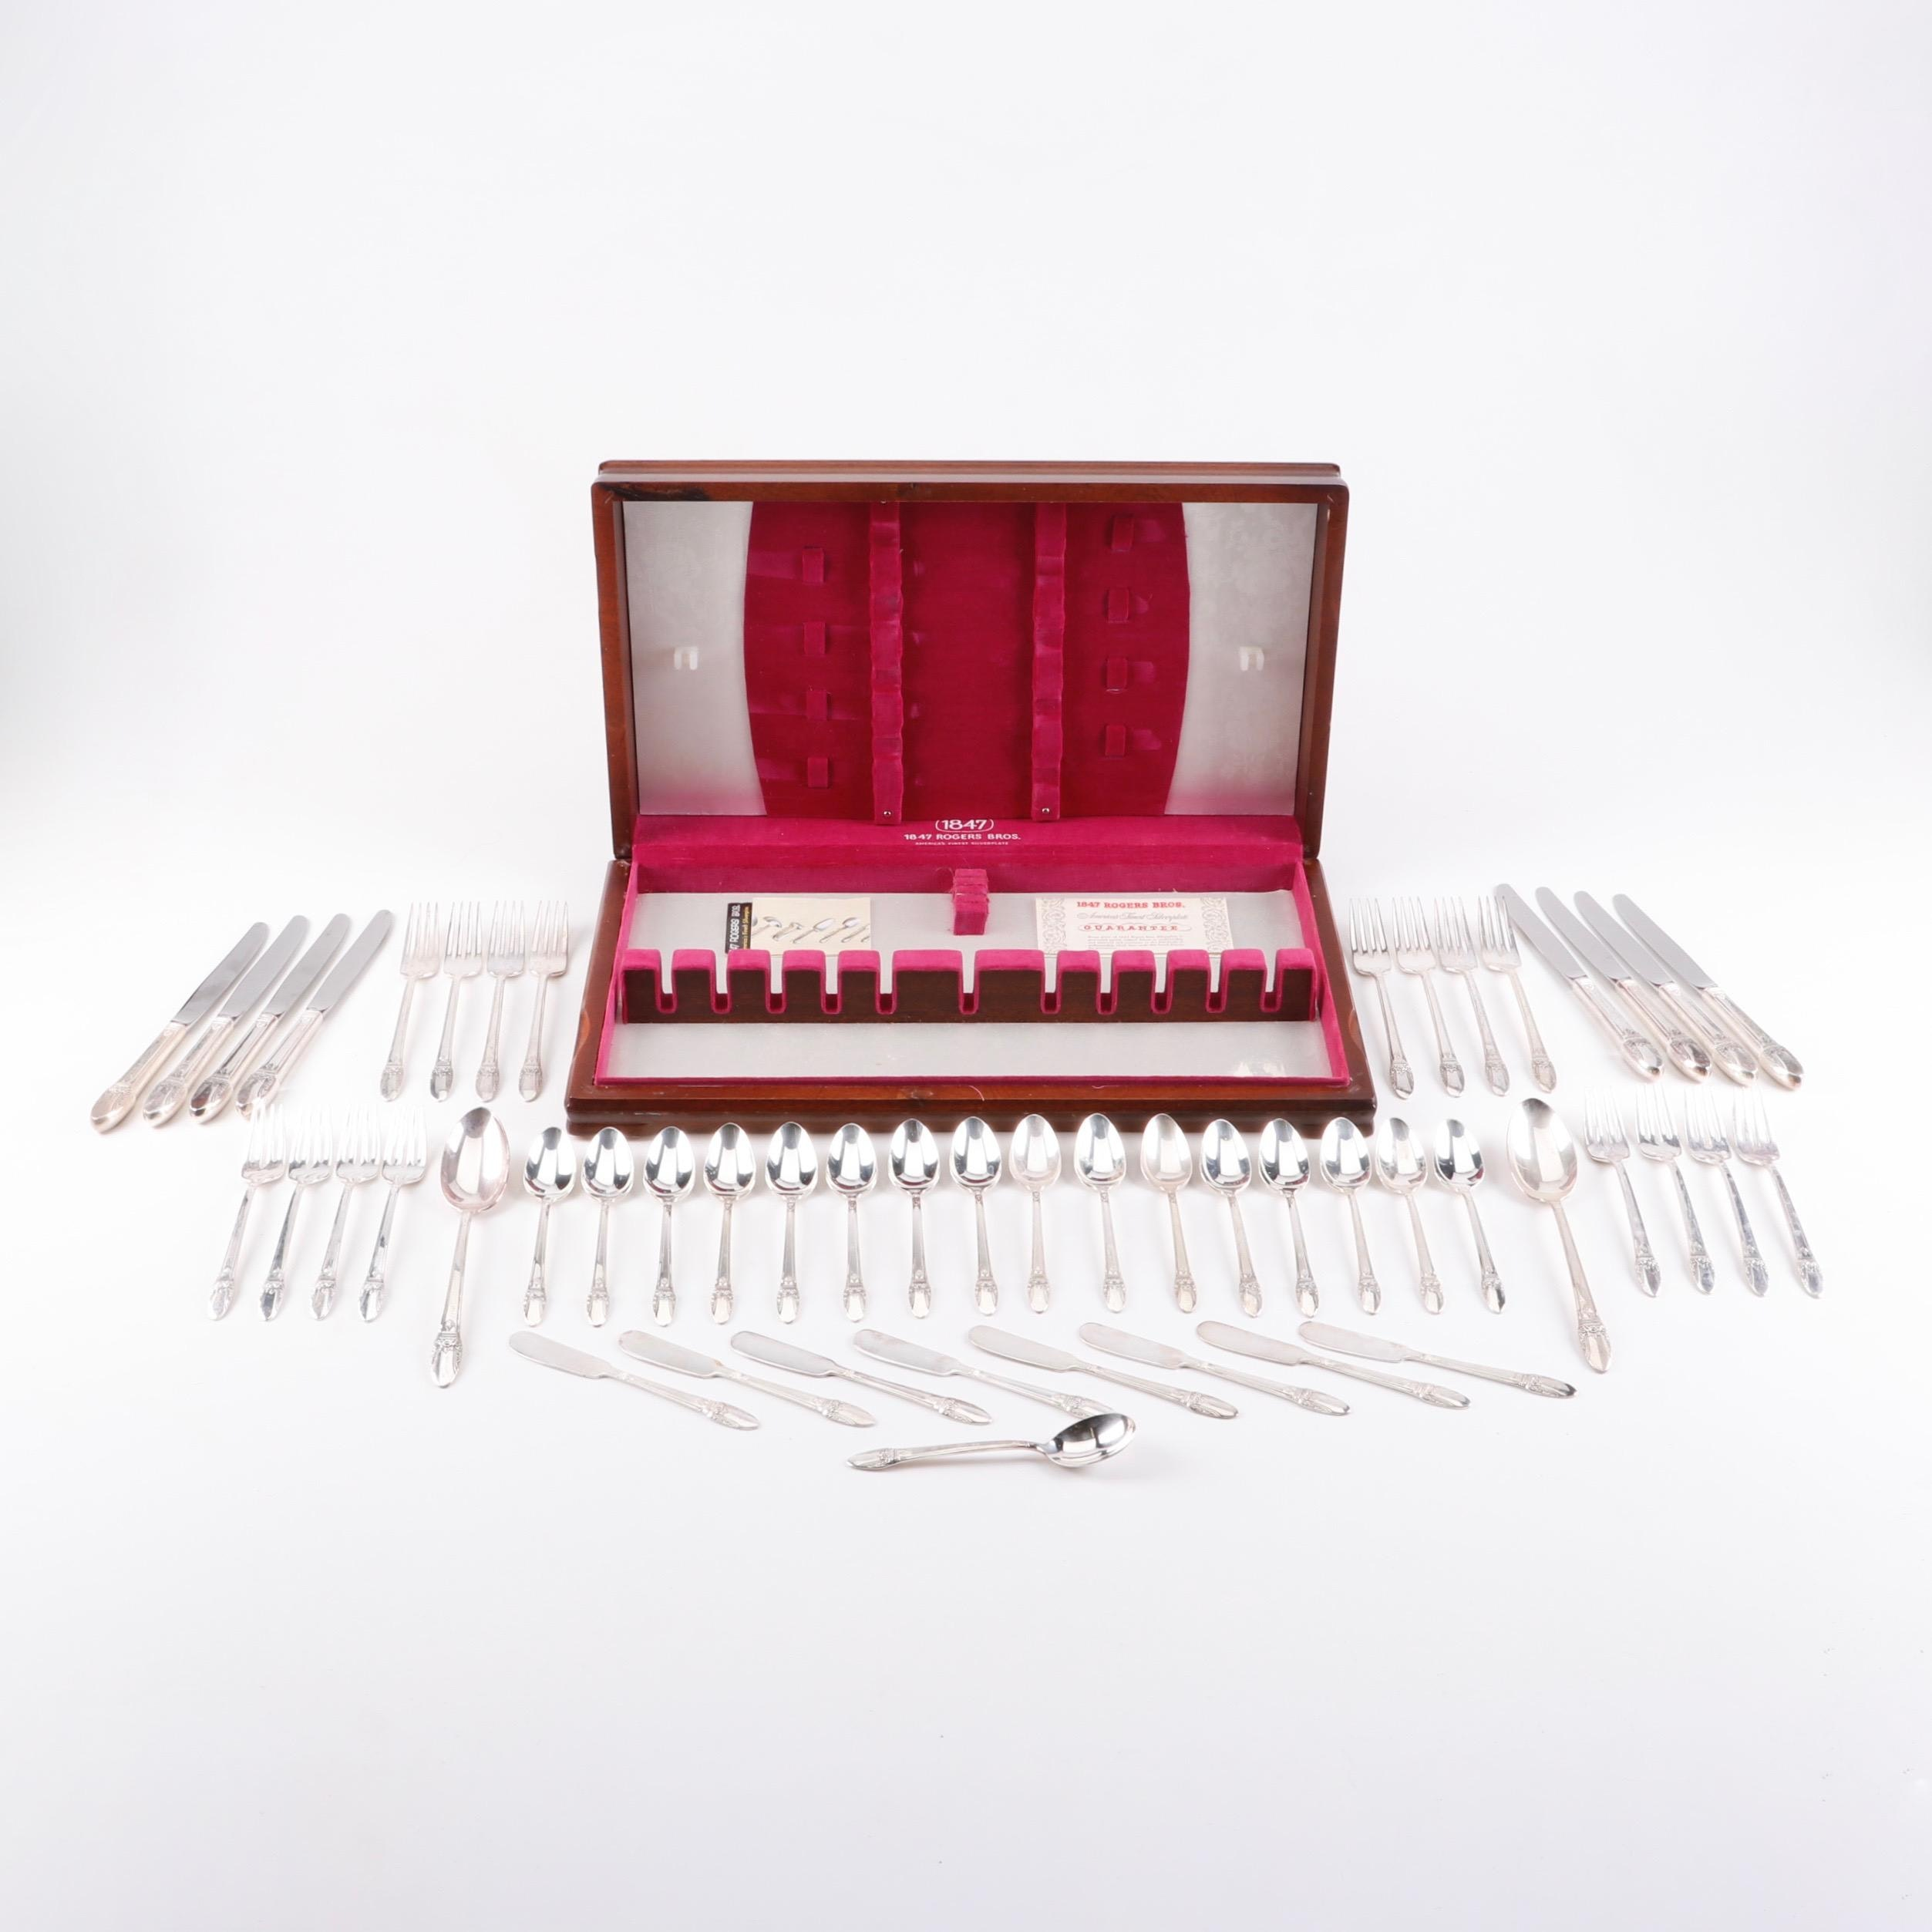 "Silverplate 1847 Rogers Bros ""First Love"" Flatware Set"